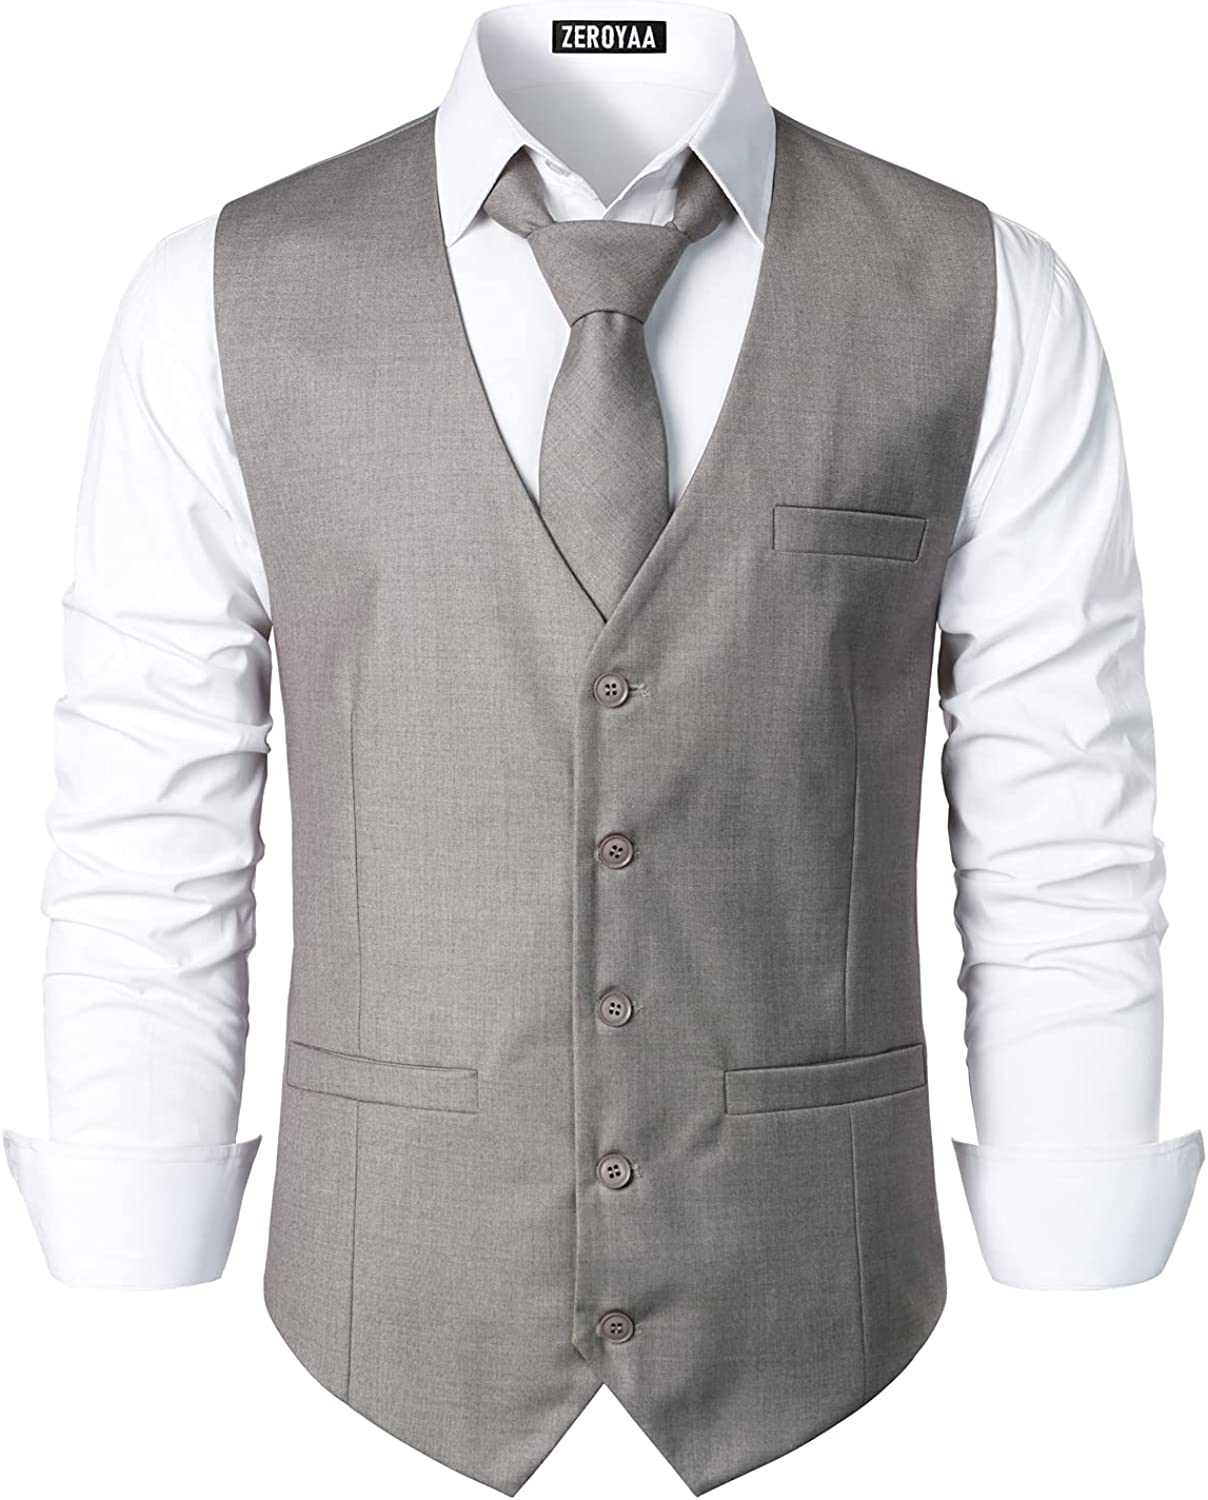 Outlet sale feature ZEROYAA Men's Hipster Urban Design Pockets New product type Dre Business 3 Formal